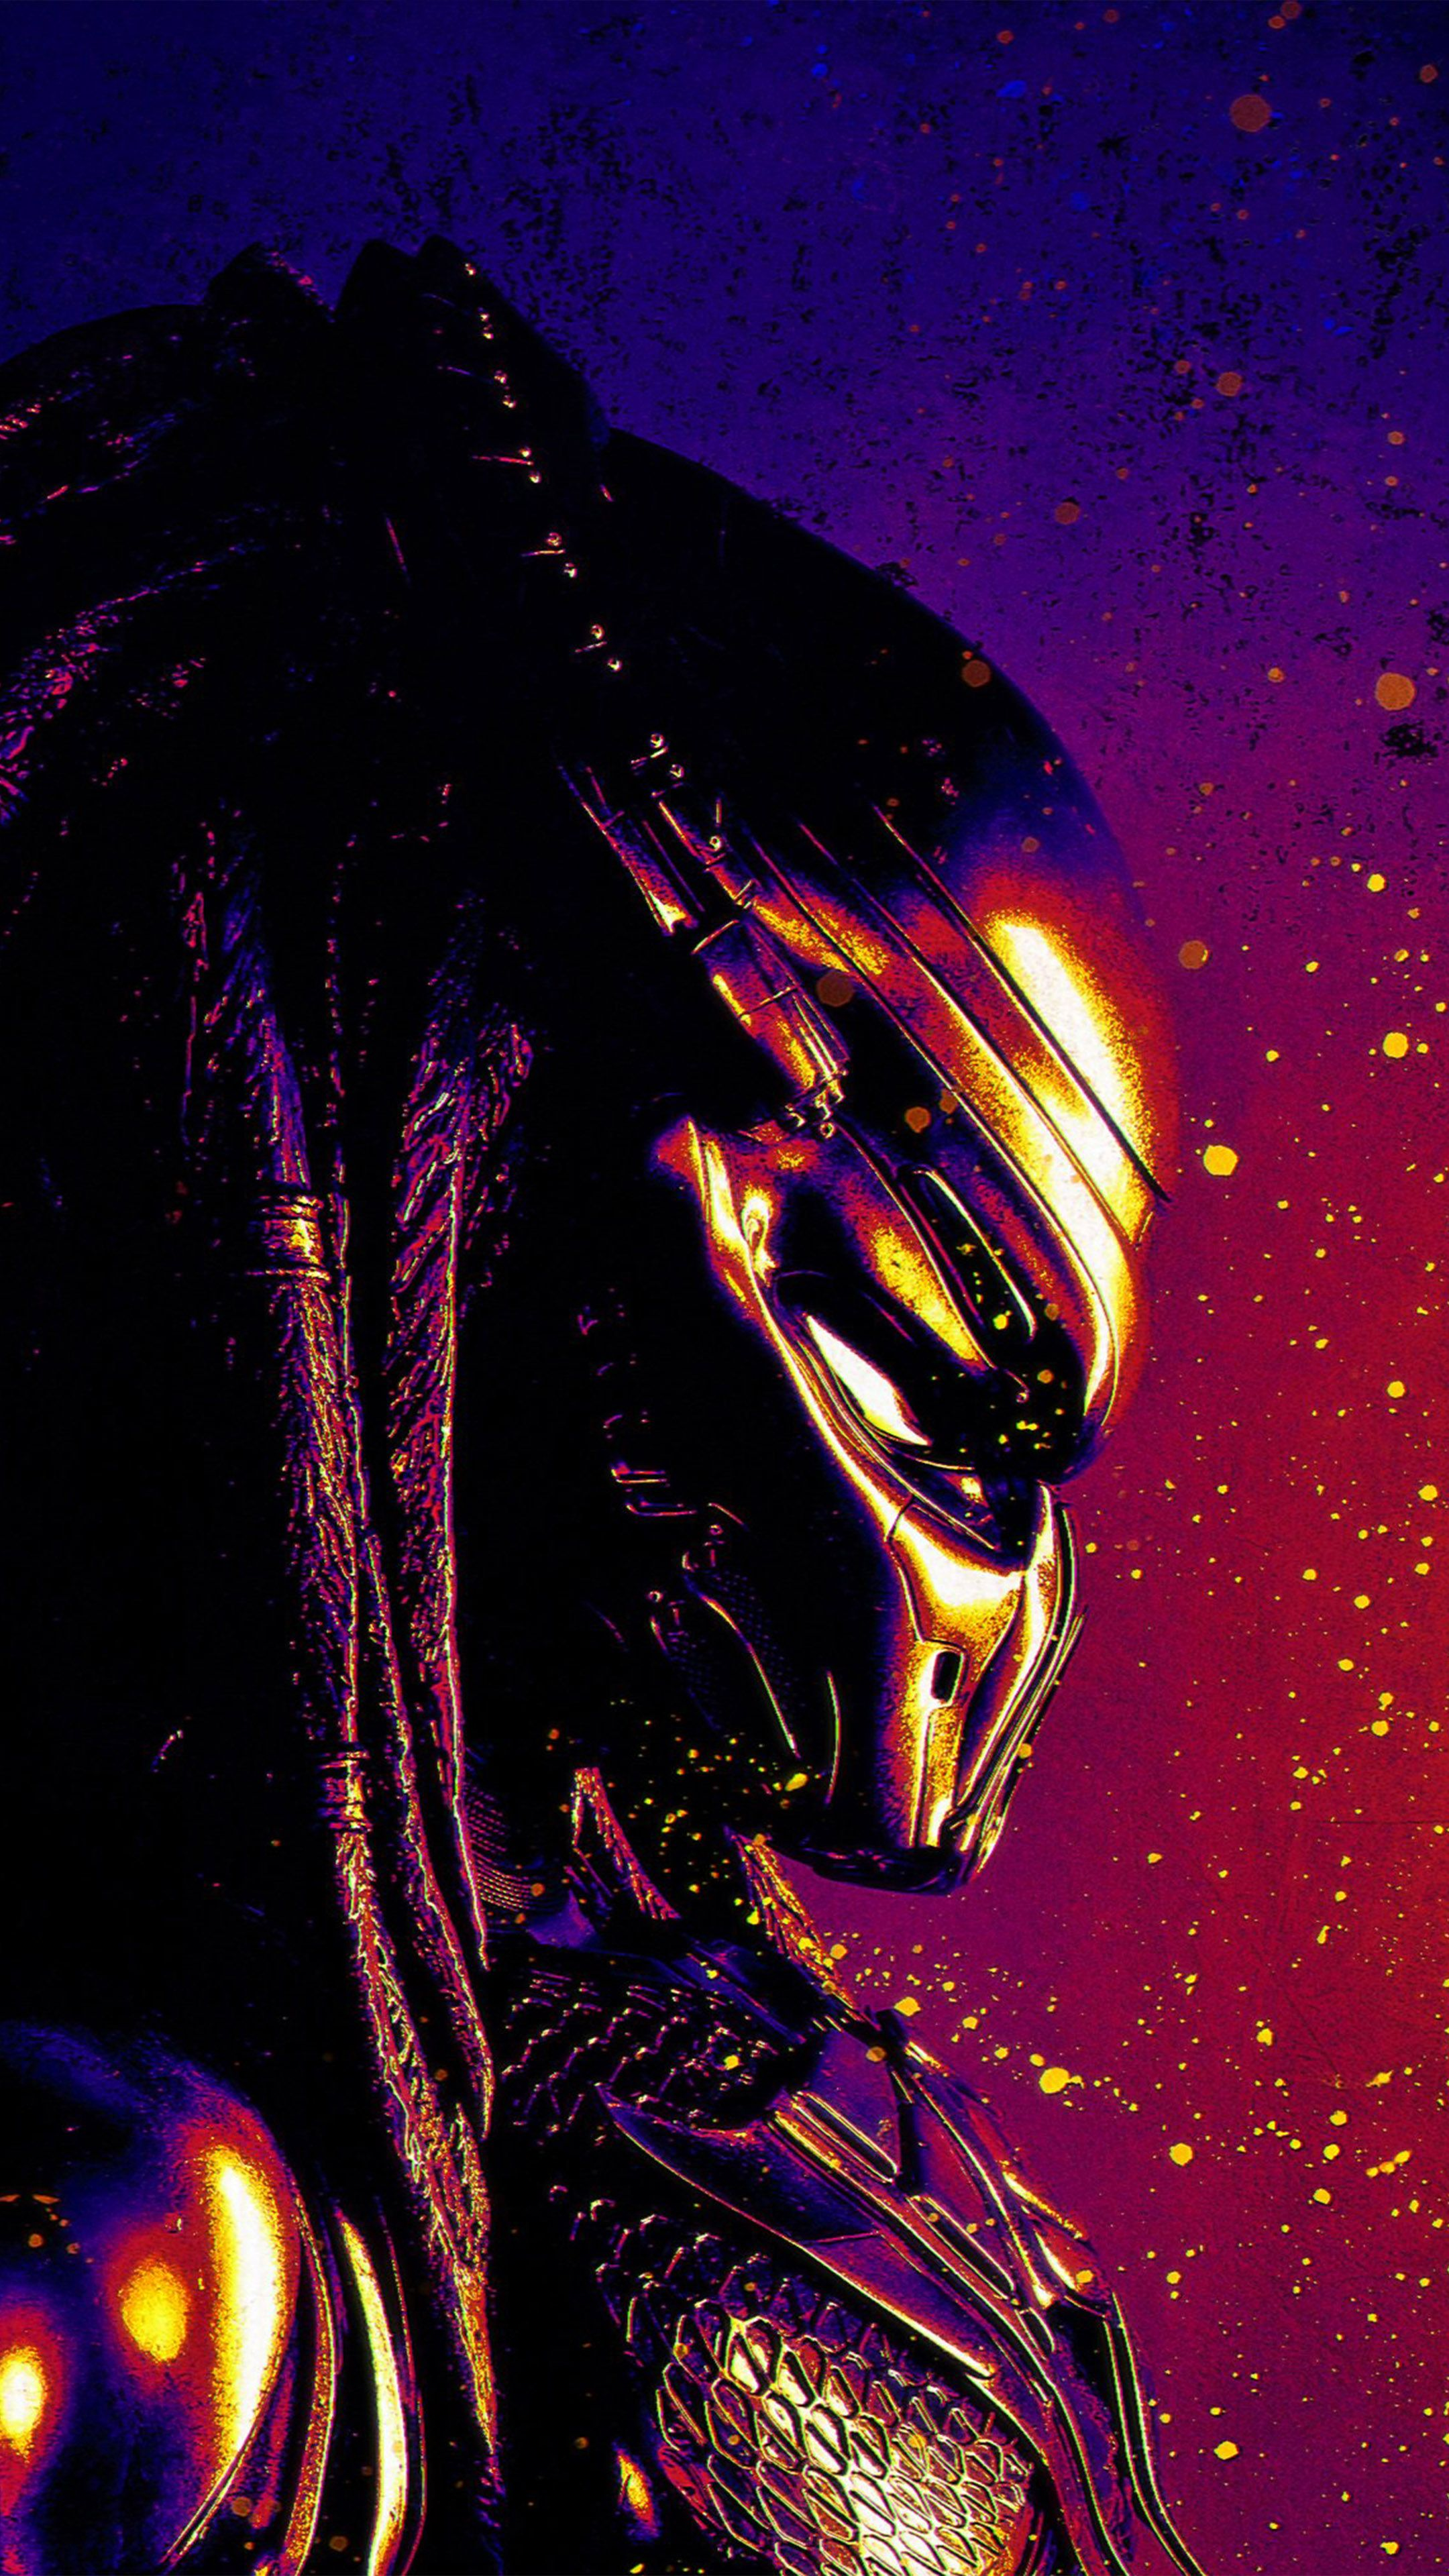 Predator 2018 Artwork Cool Wallpapers 4k Predator Artwork